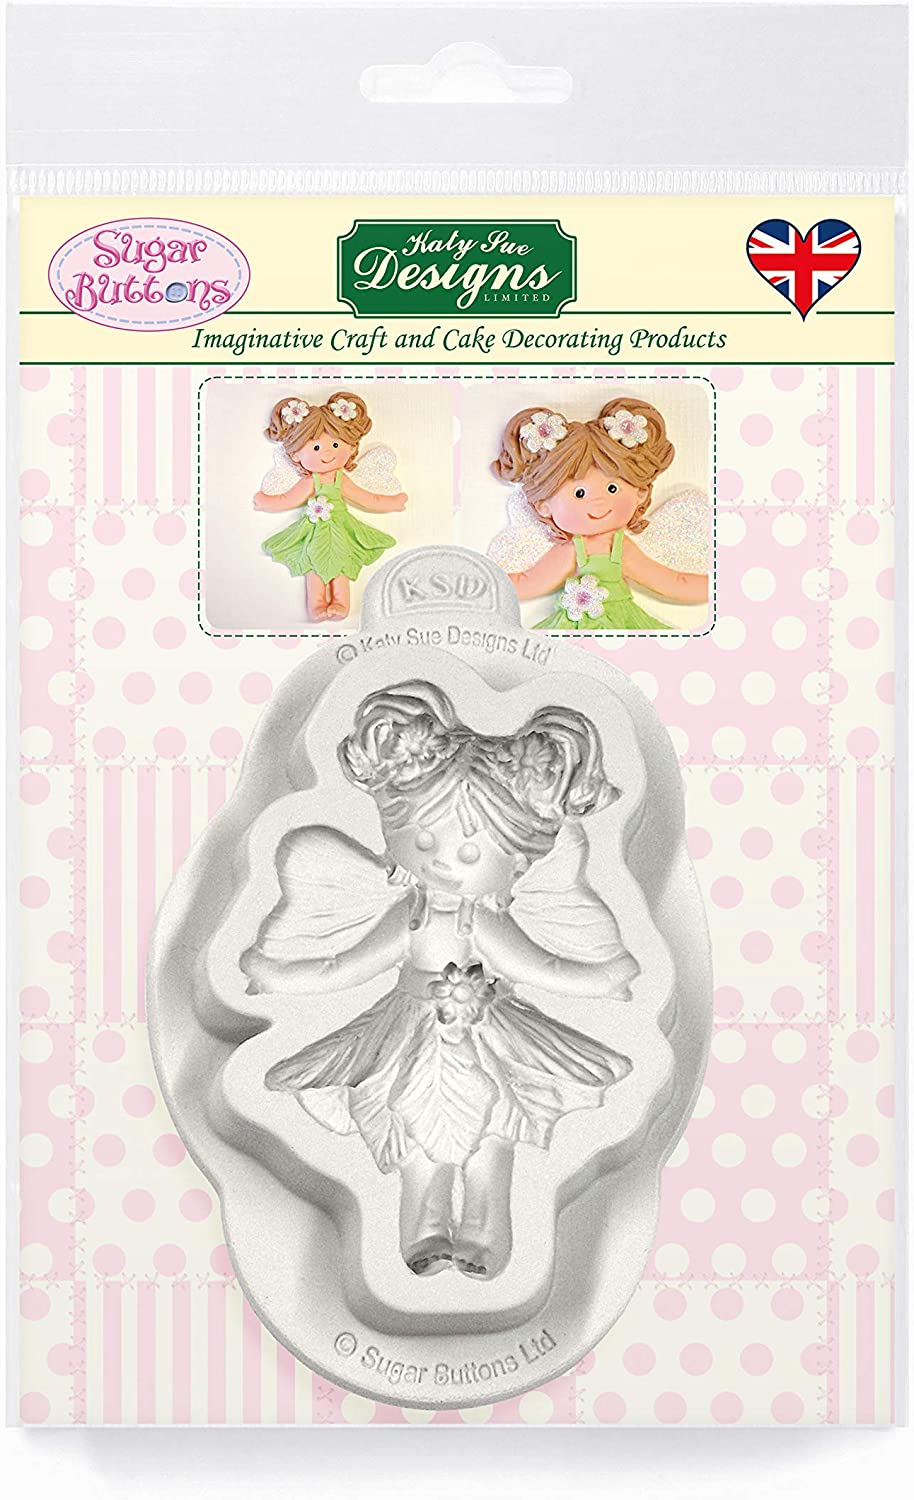 Fairy Silicone Mold for Cake Decorating, Crafts, Cupcakes, Sugarcraft, Candies, Card Making and Clay, Food Safe Approved, Made in the UK, Sugar Buttons by Kathryn Sturrock